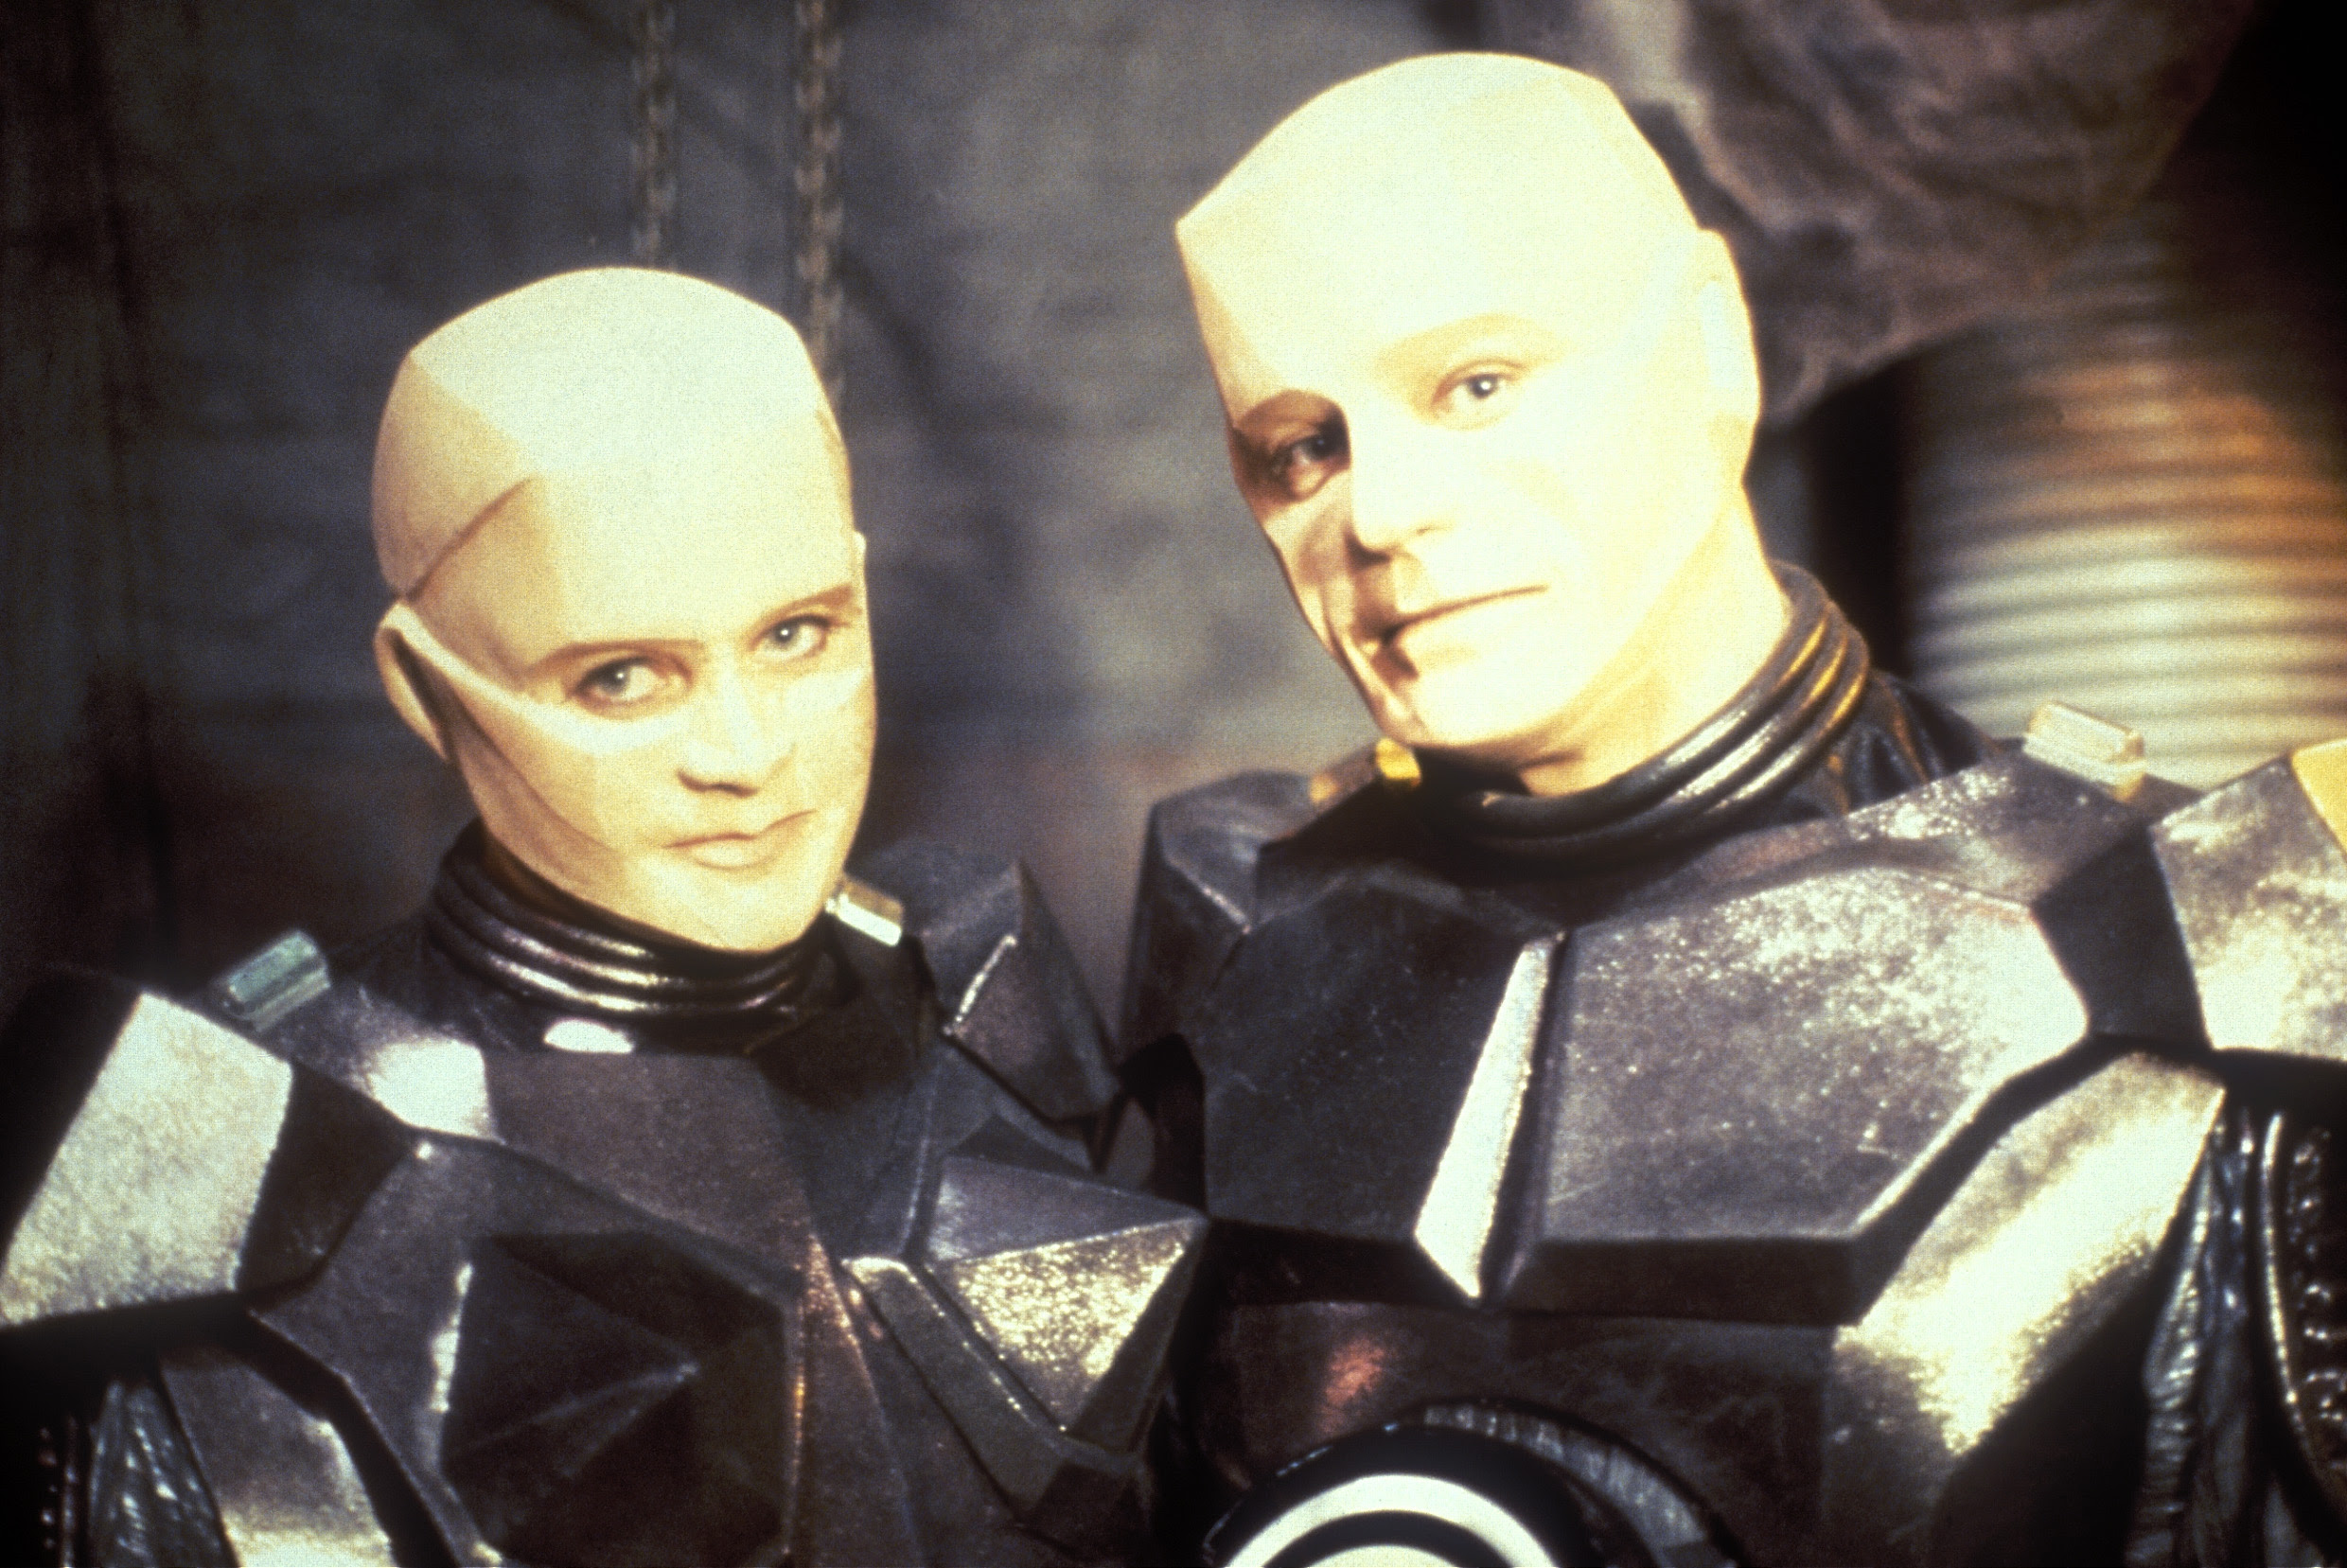 Camille and Kryten